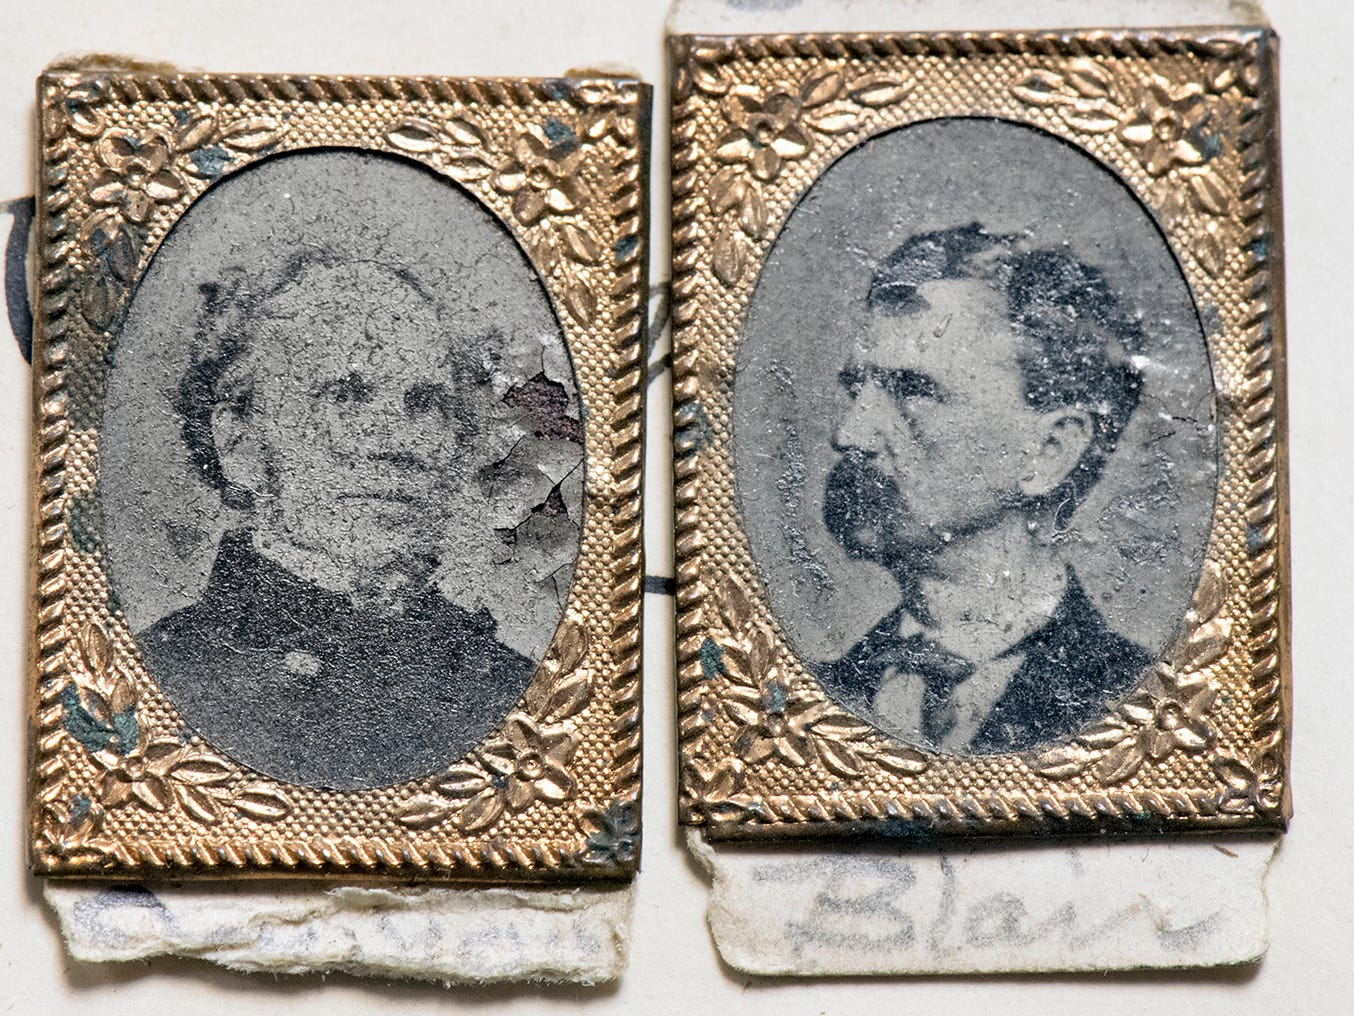 This pair of gem-sized tintypes of Horatio Seymour, left, and Francis Preston Blair Jr.  was used as political pins in the 1868 presidential election. They are to be auctioned during the Blair Family, Fine Arts & Antiques Auction at Keystone Auctions LLC Saturday, October 27, 2018 at 9 a.m.